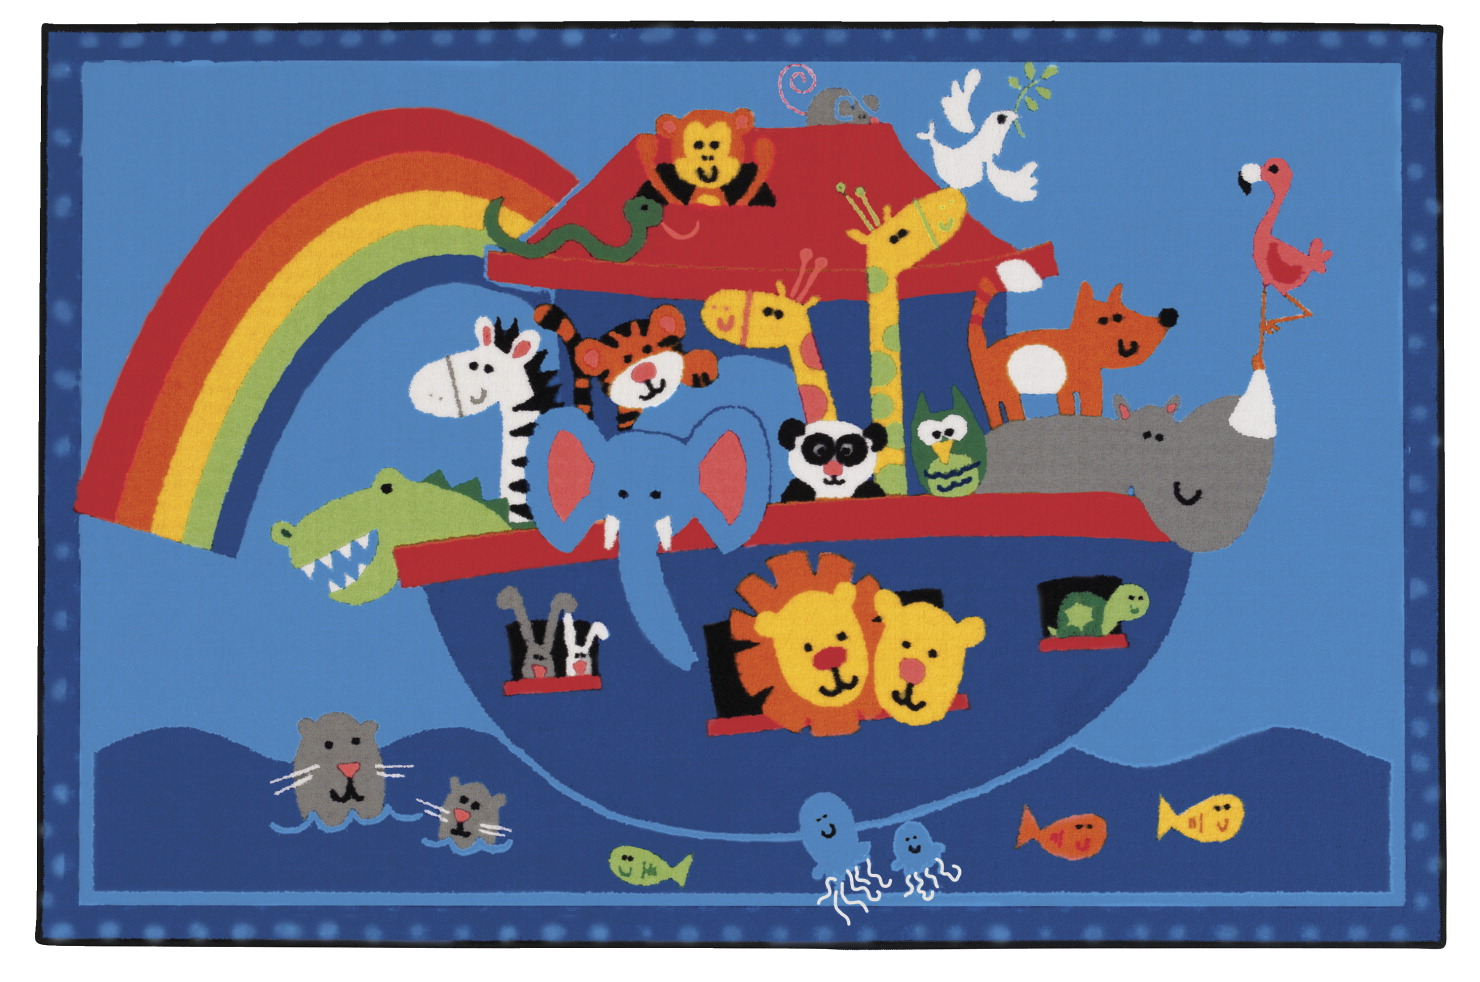 Carpets For Kids Kids Value Noah's Animals Rug, 3 Feet x 4 Feet 6 Inches, Rectangle